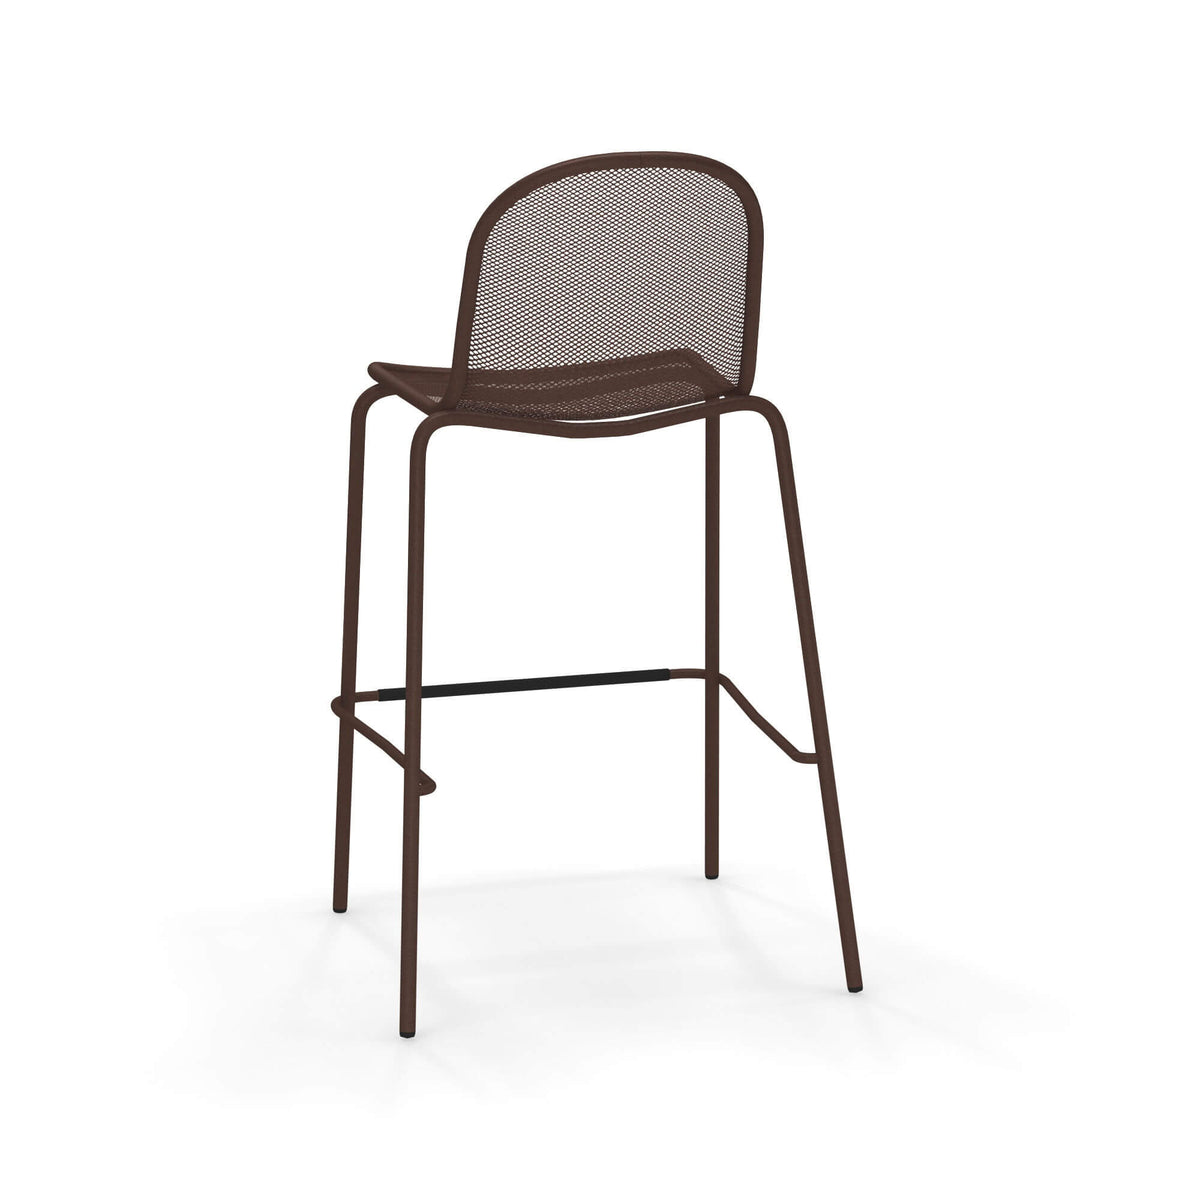 Nova 662 High Stool-Emu-Contract Furniture Store